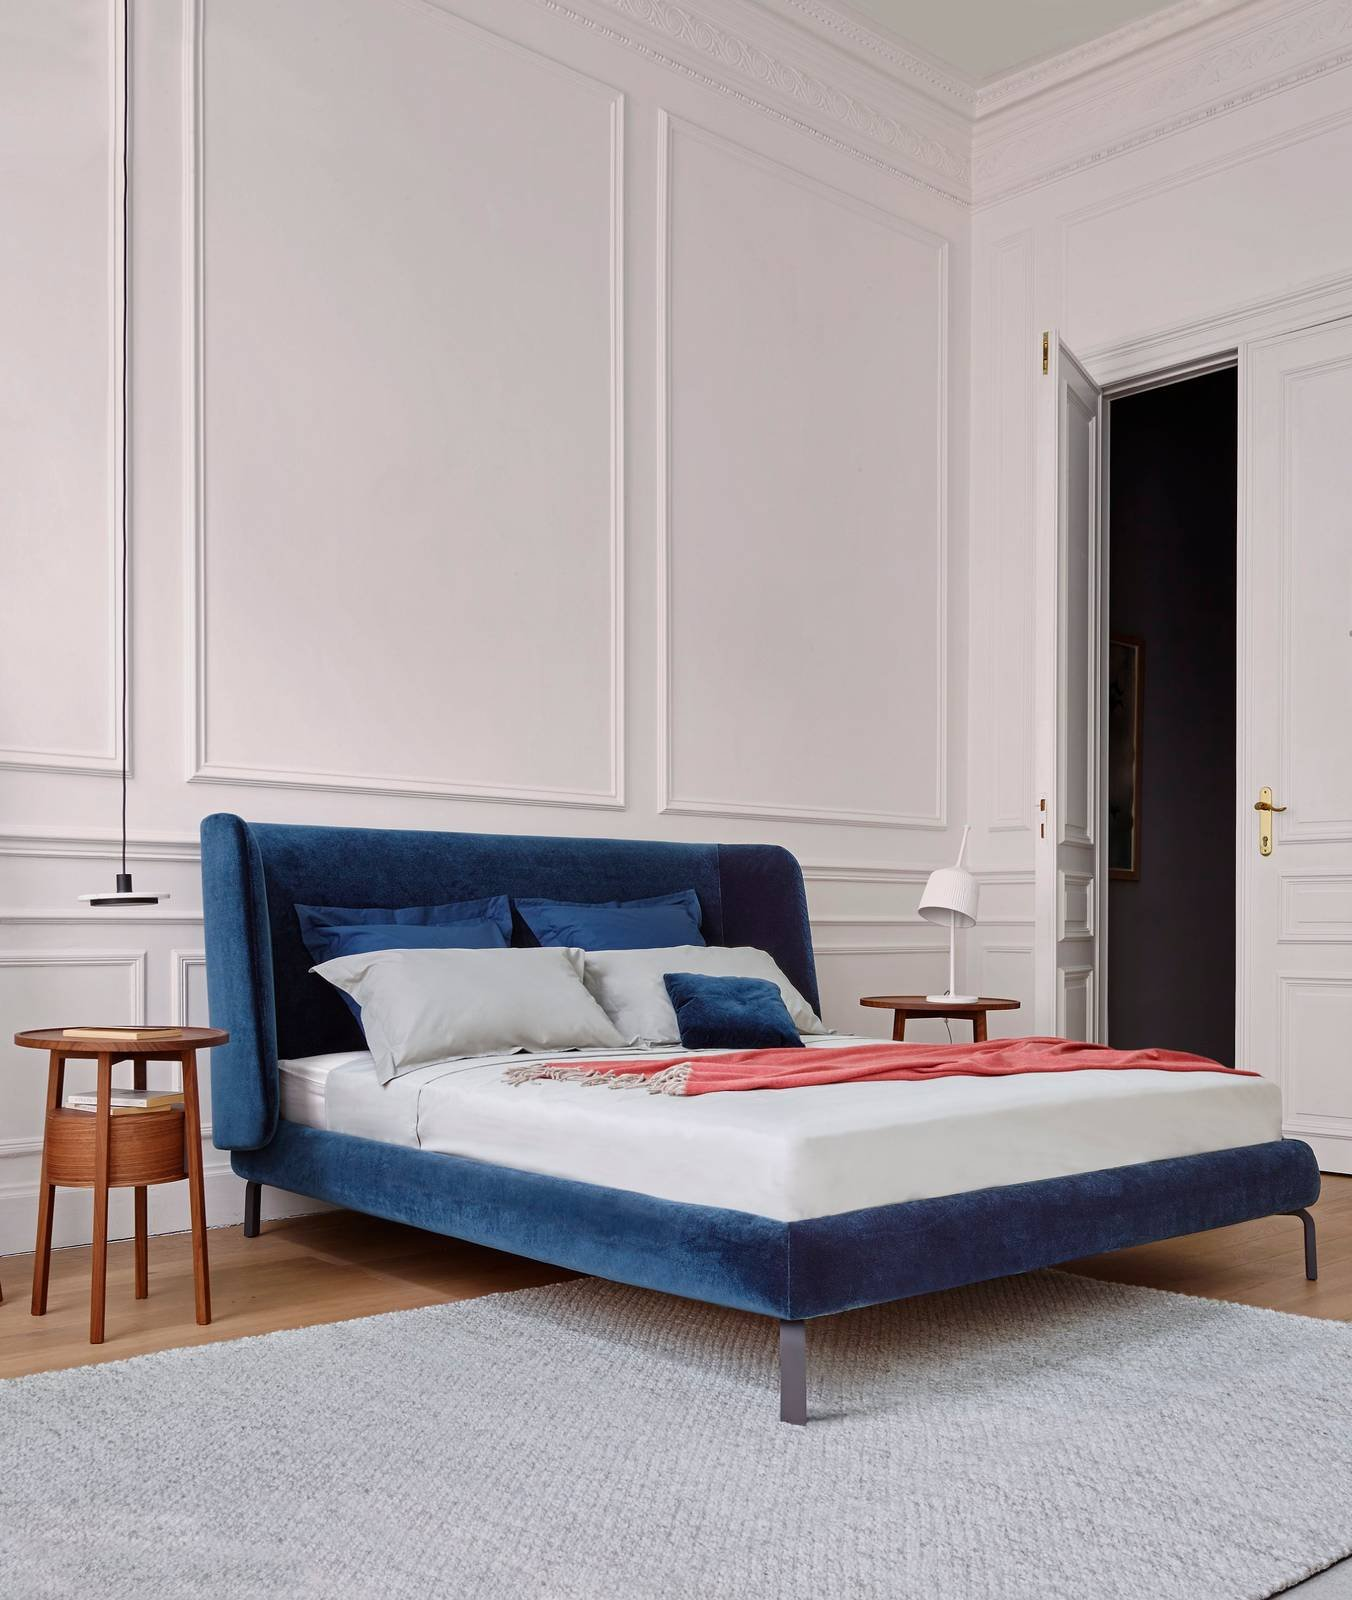 letto colorato neutro o a tinte vivaci 12 modelli di dimensioni contenute cose di casa. Black Bedroom Furniture Sets. Home Design Ideas